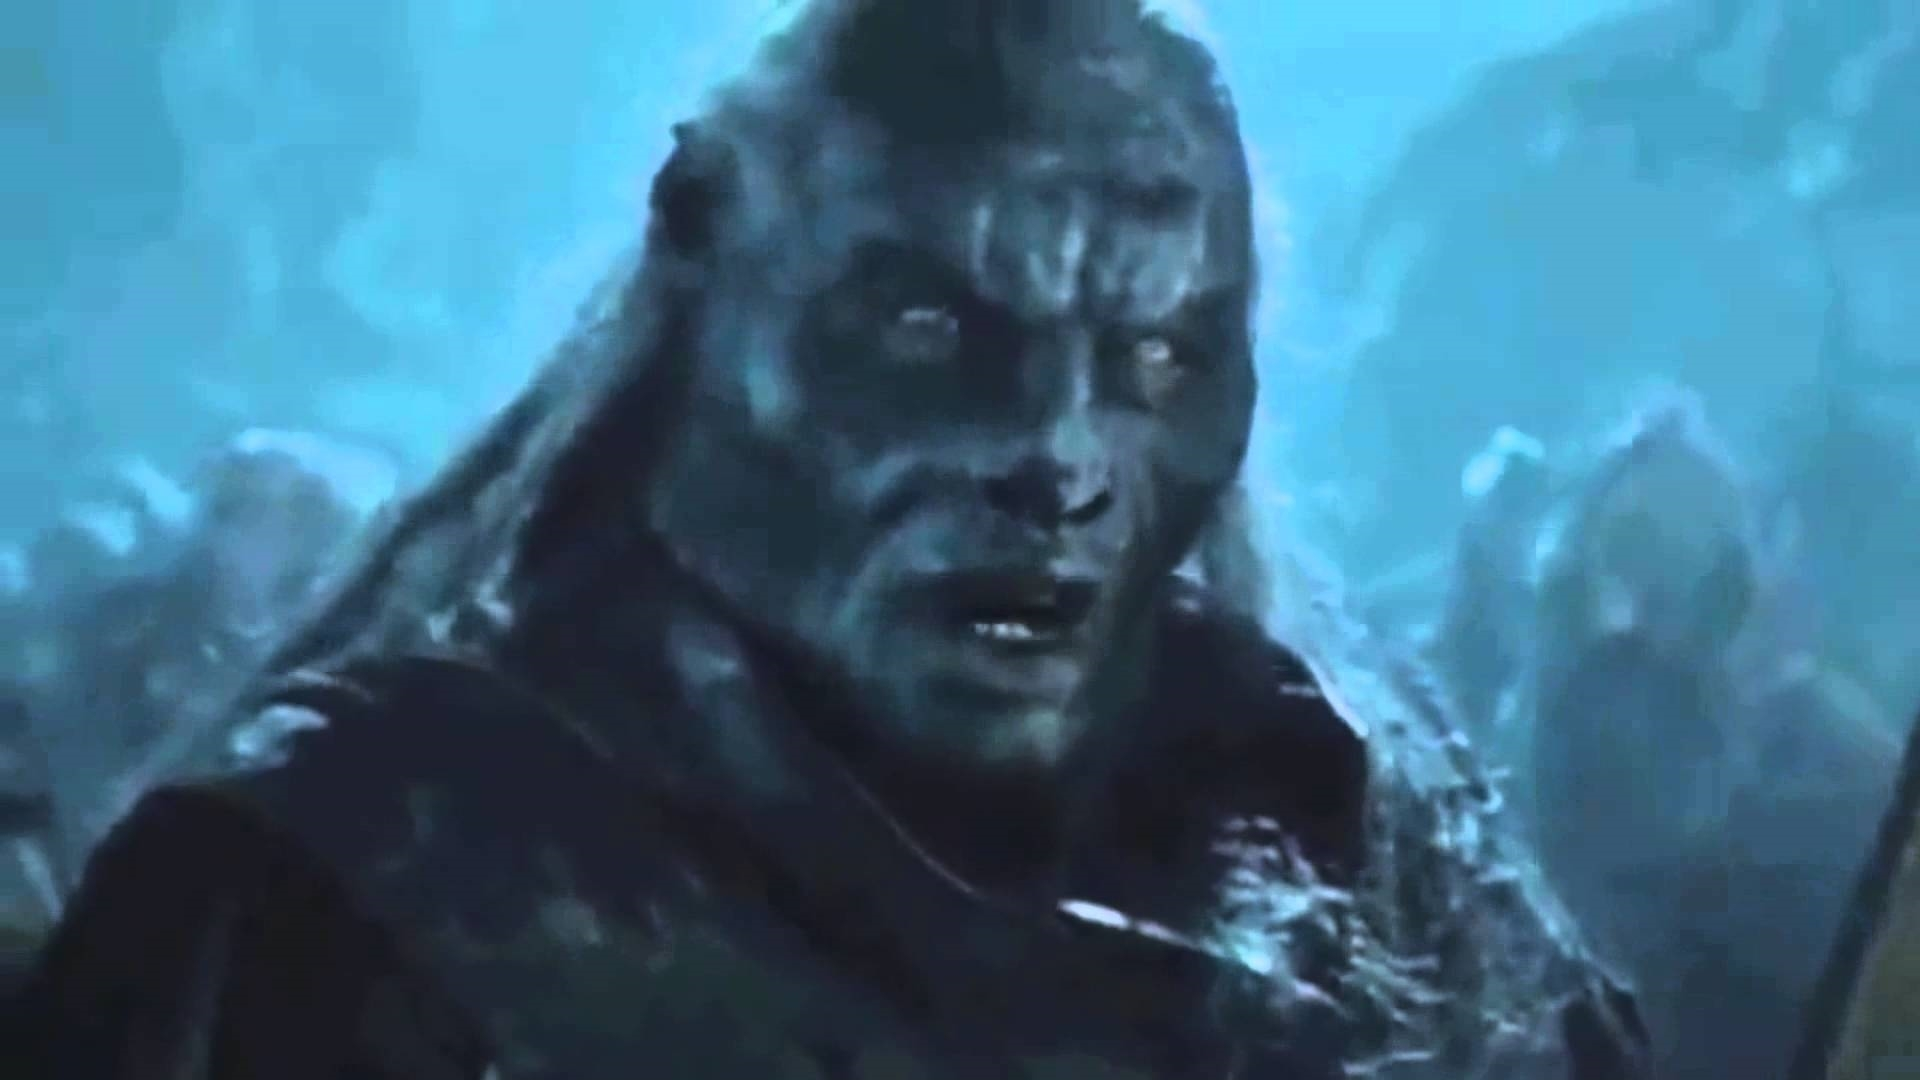 Lord of the Rings Orc